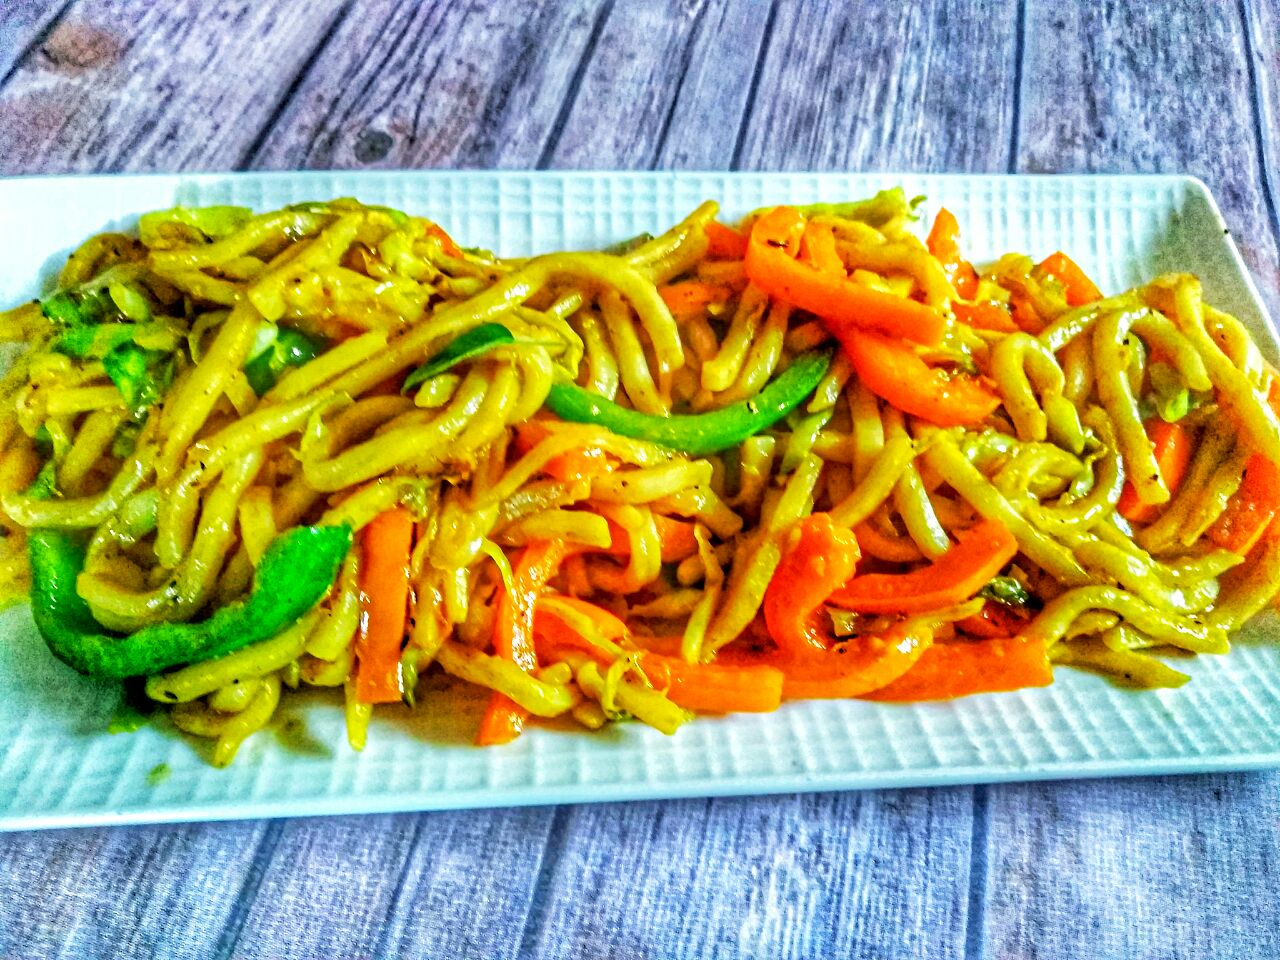 Peppery Curried Stir fried Udon noodles